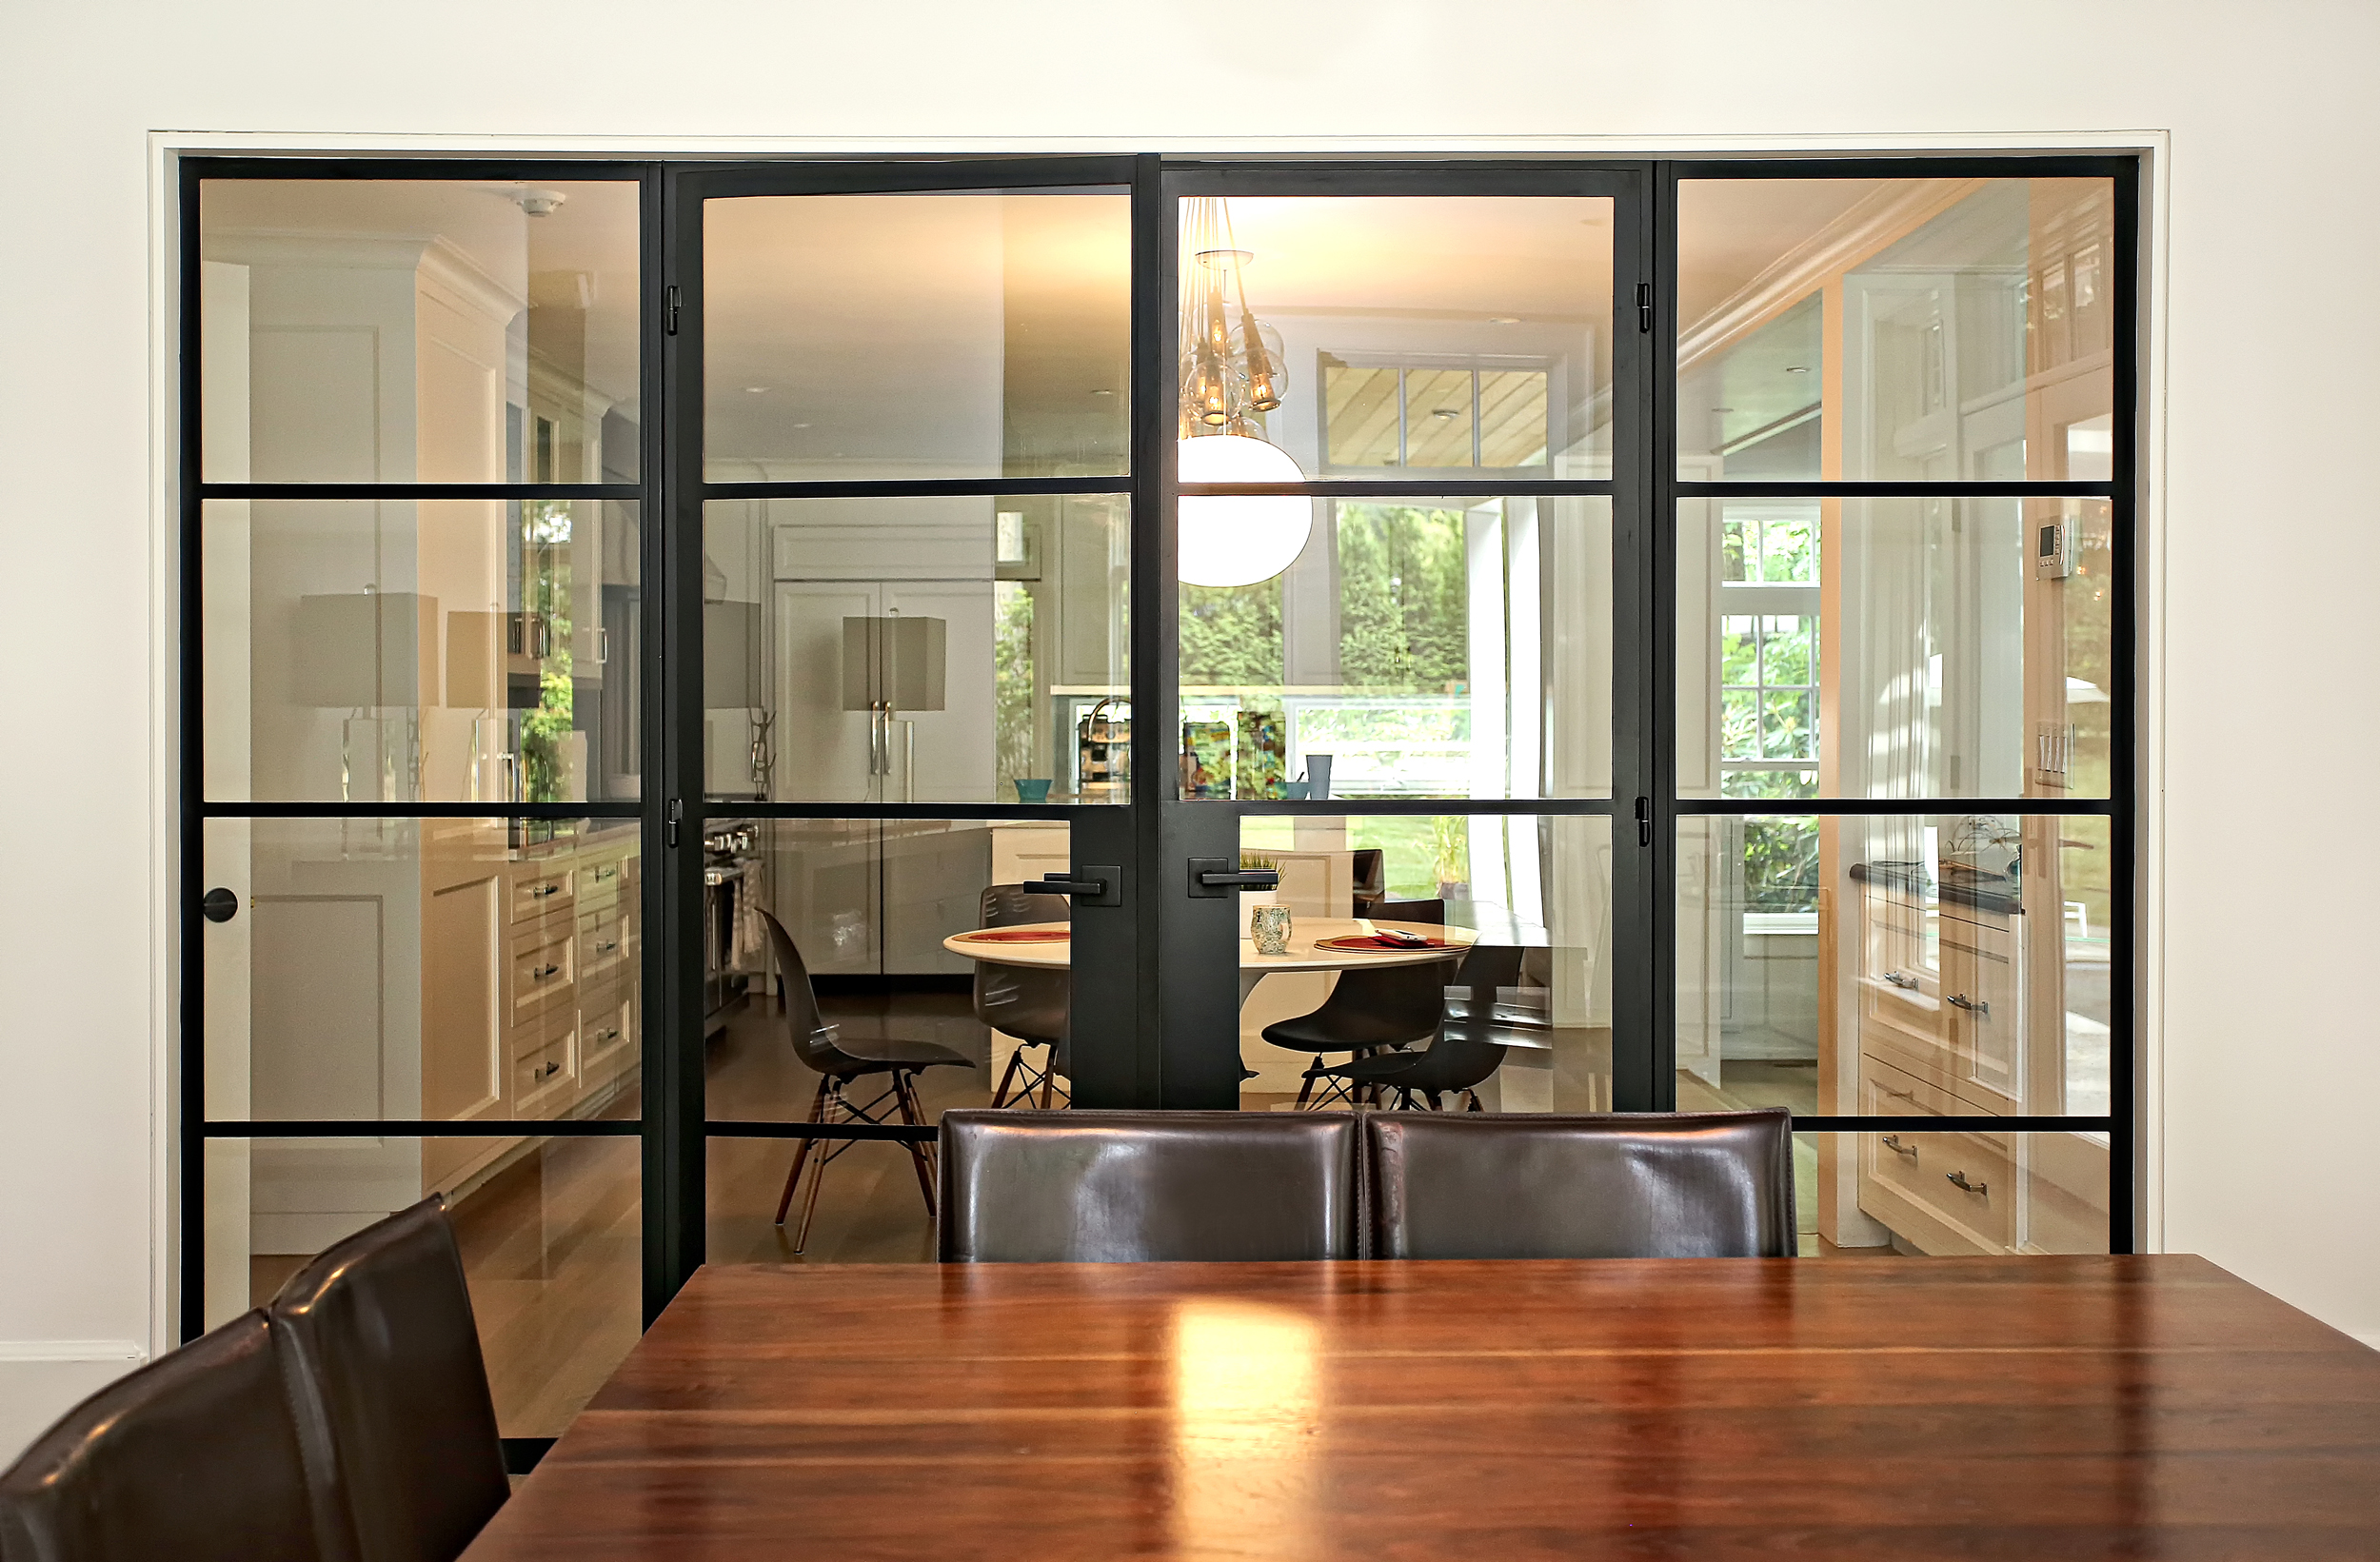 This is the view from the Dining Room into the Kitchen area.  We designed these steel doors to seperate the space, but allow a view from the Kitchen out to the yard through the Dining Room.